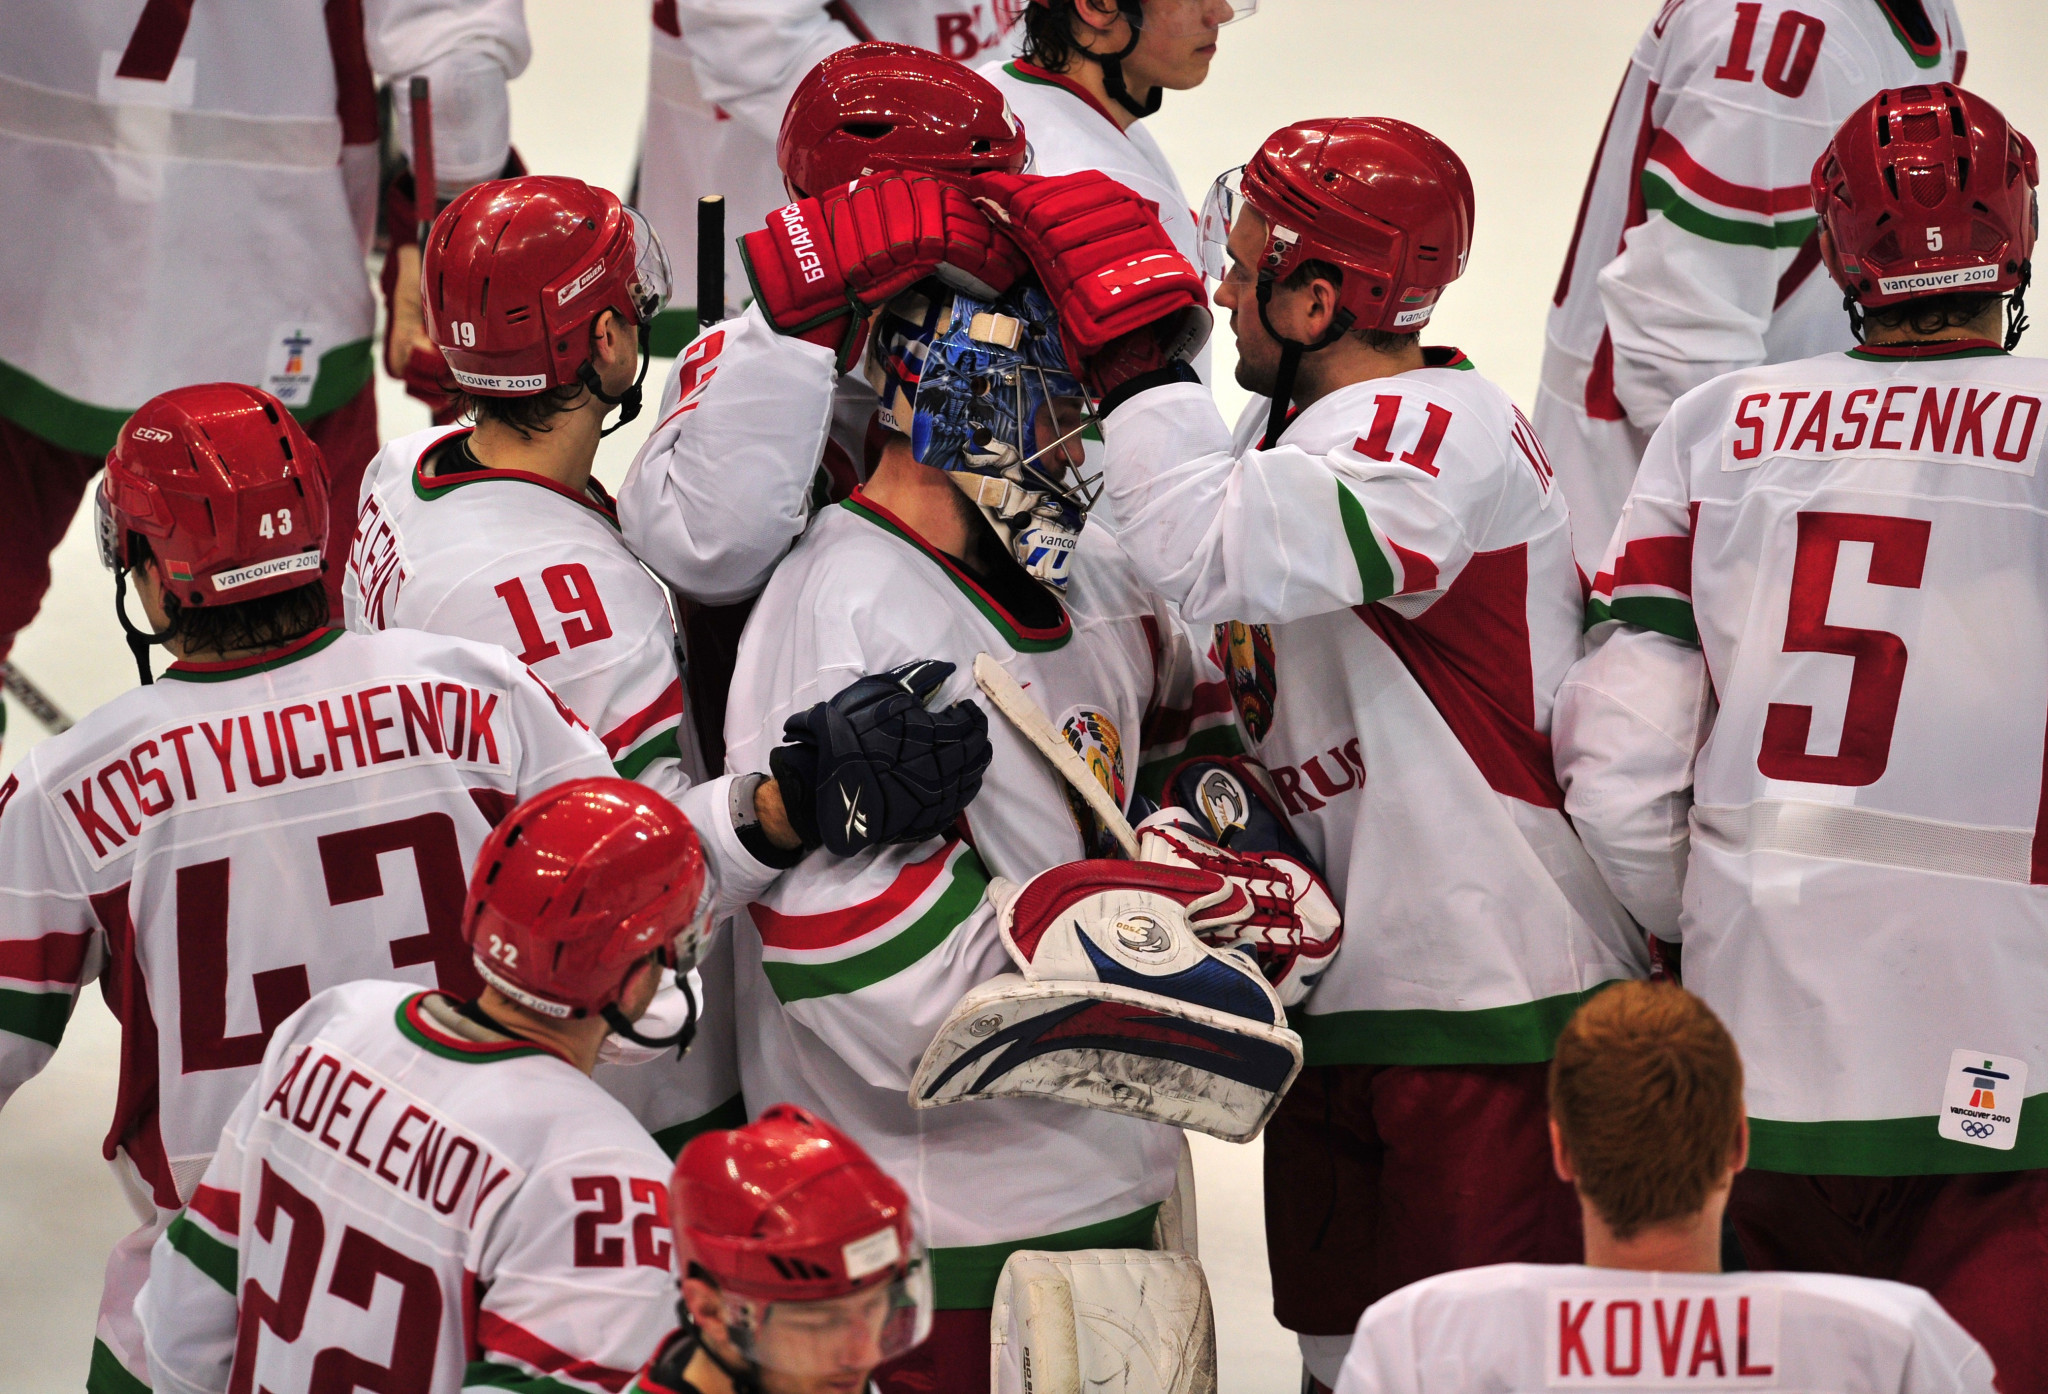 Mikhail Zakharov coached Belarus during the Vancouver 2010 Olympics ©Getty Images